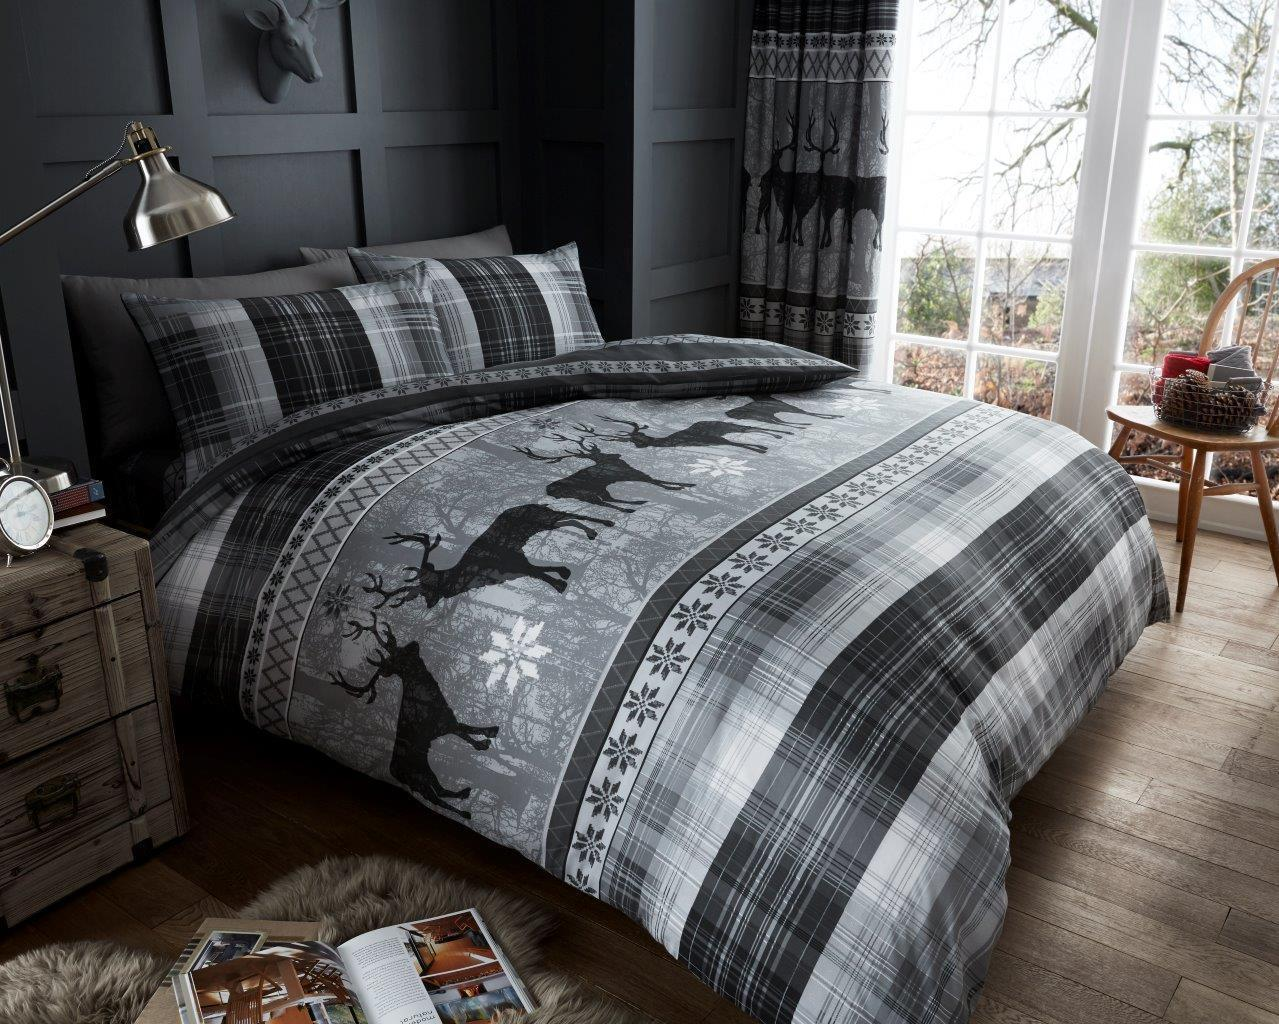 Christmas XMAS Luxury Heritage Stag Duvet Cover Sets Reversible Bedding Sets